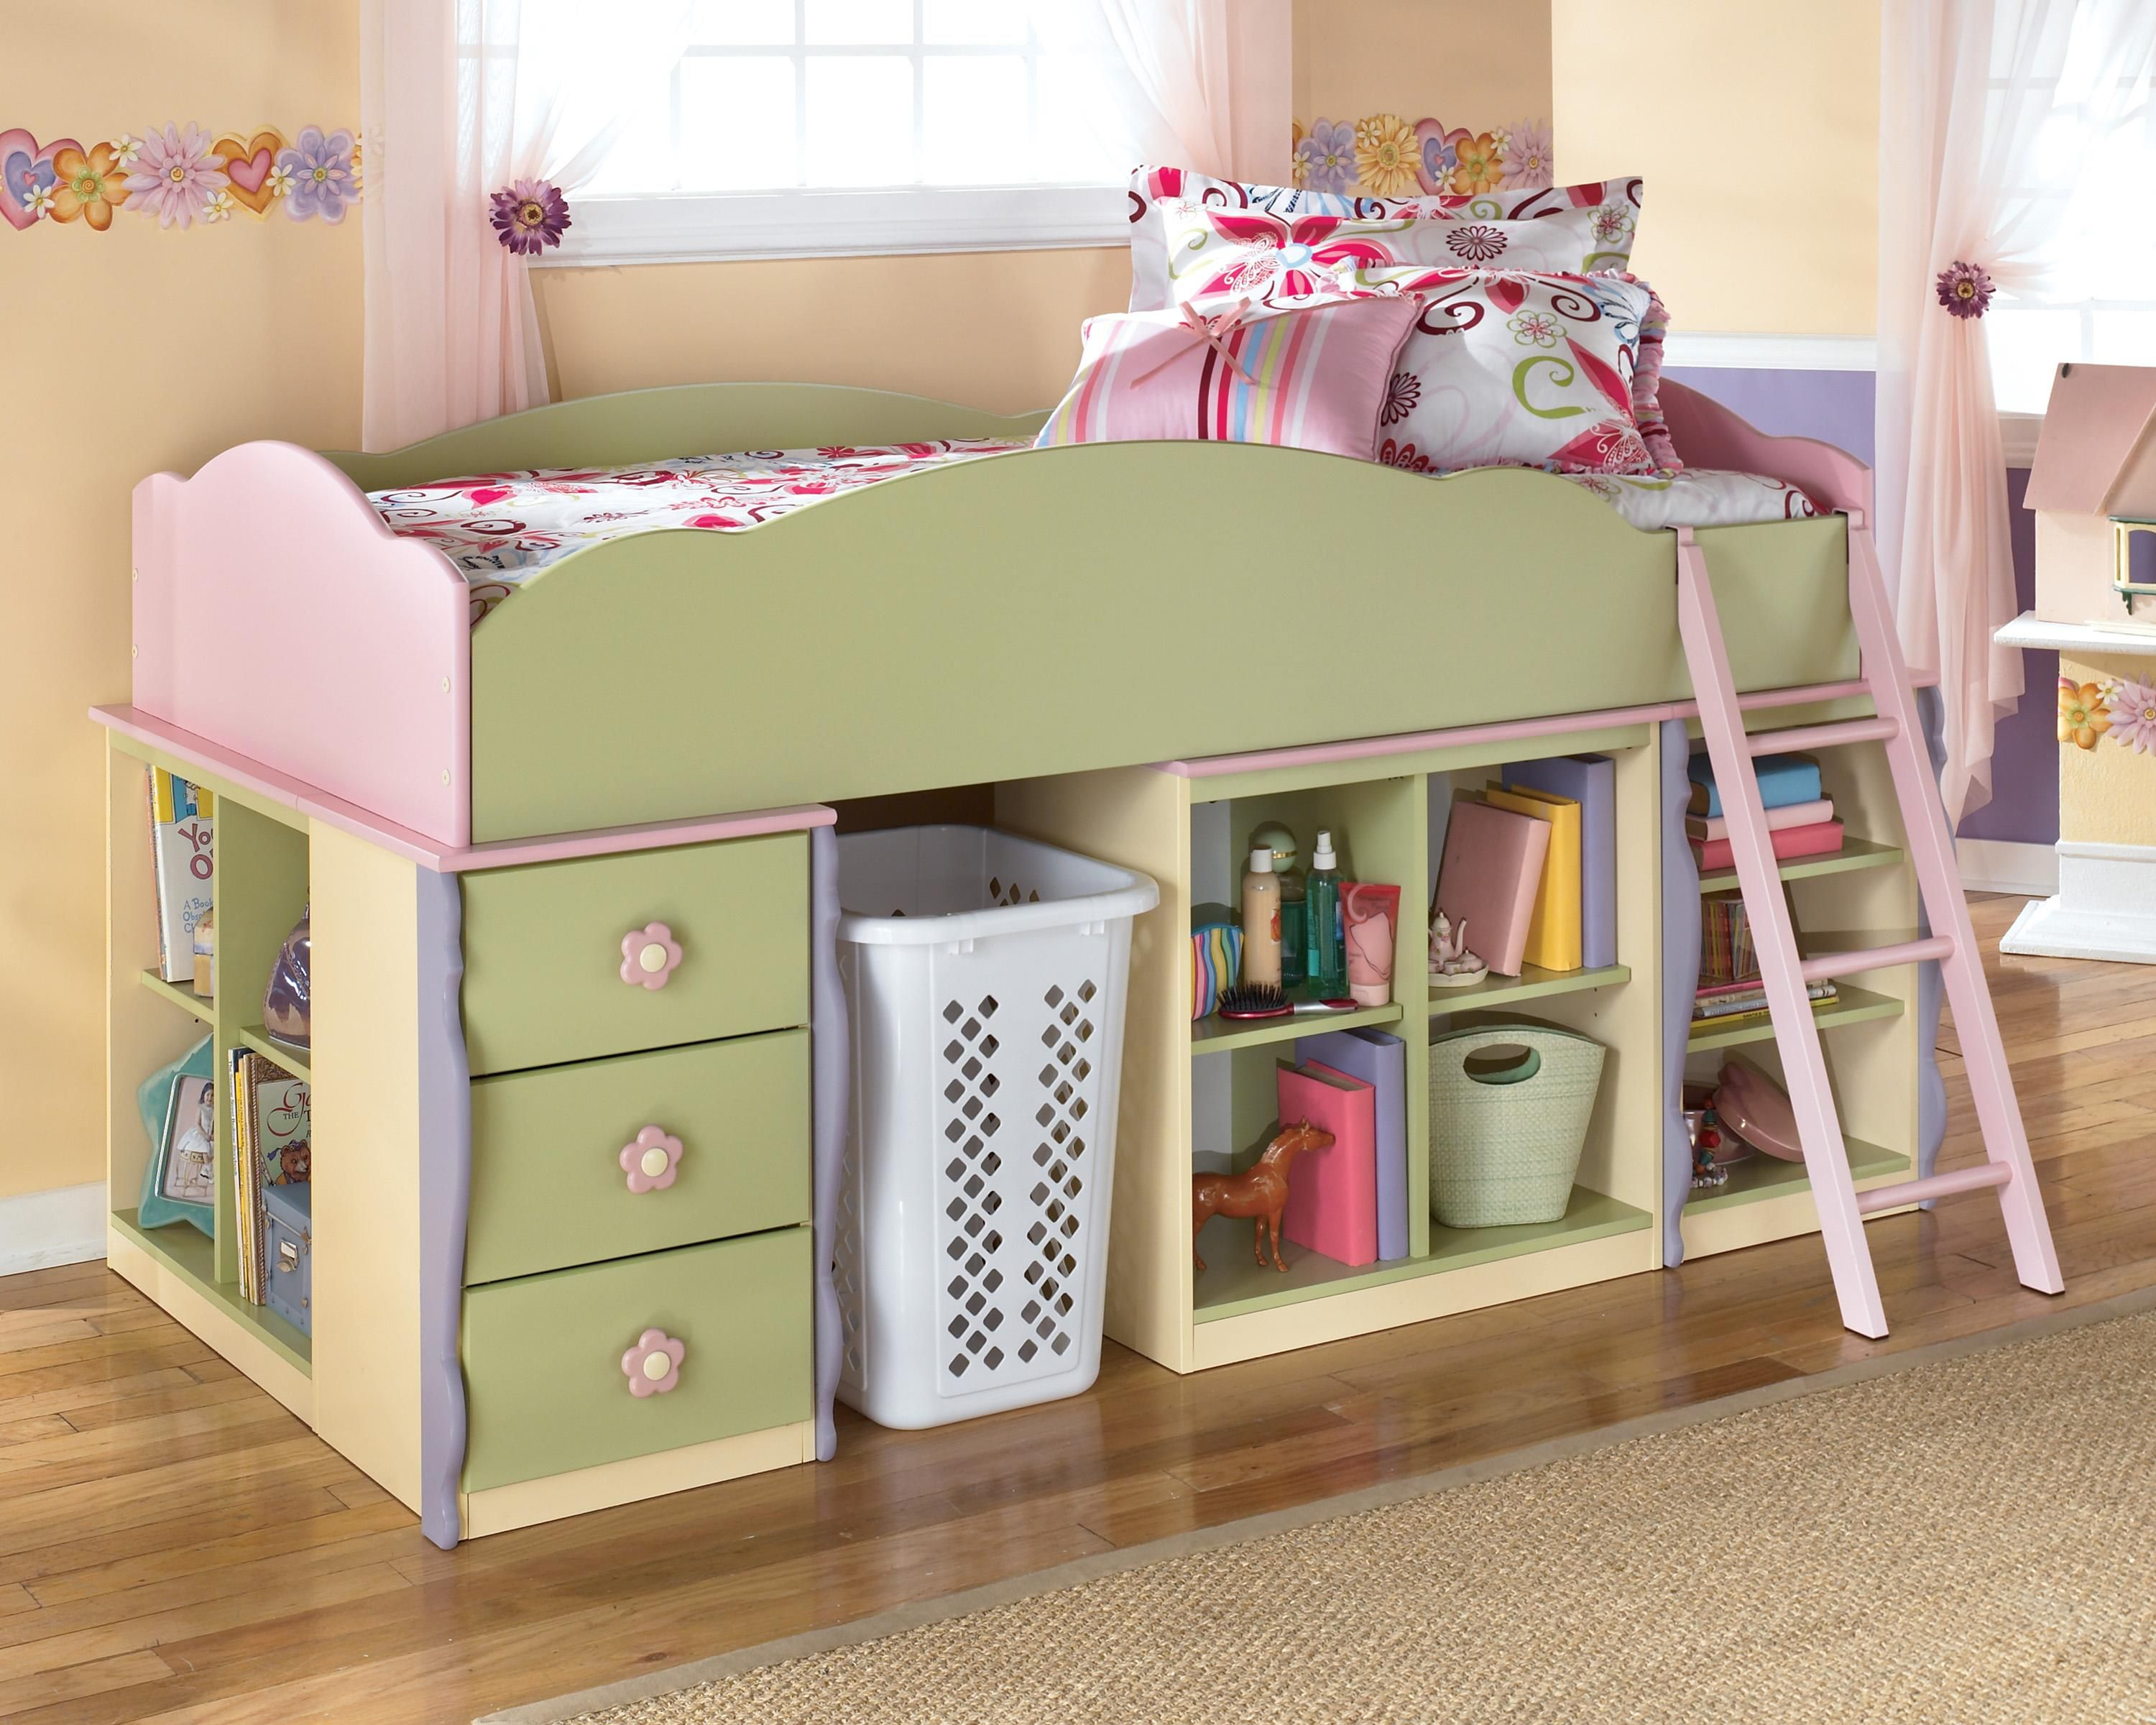 Shop Our Products  Featuring Ashley Furniture - Sams Appliance